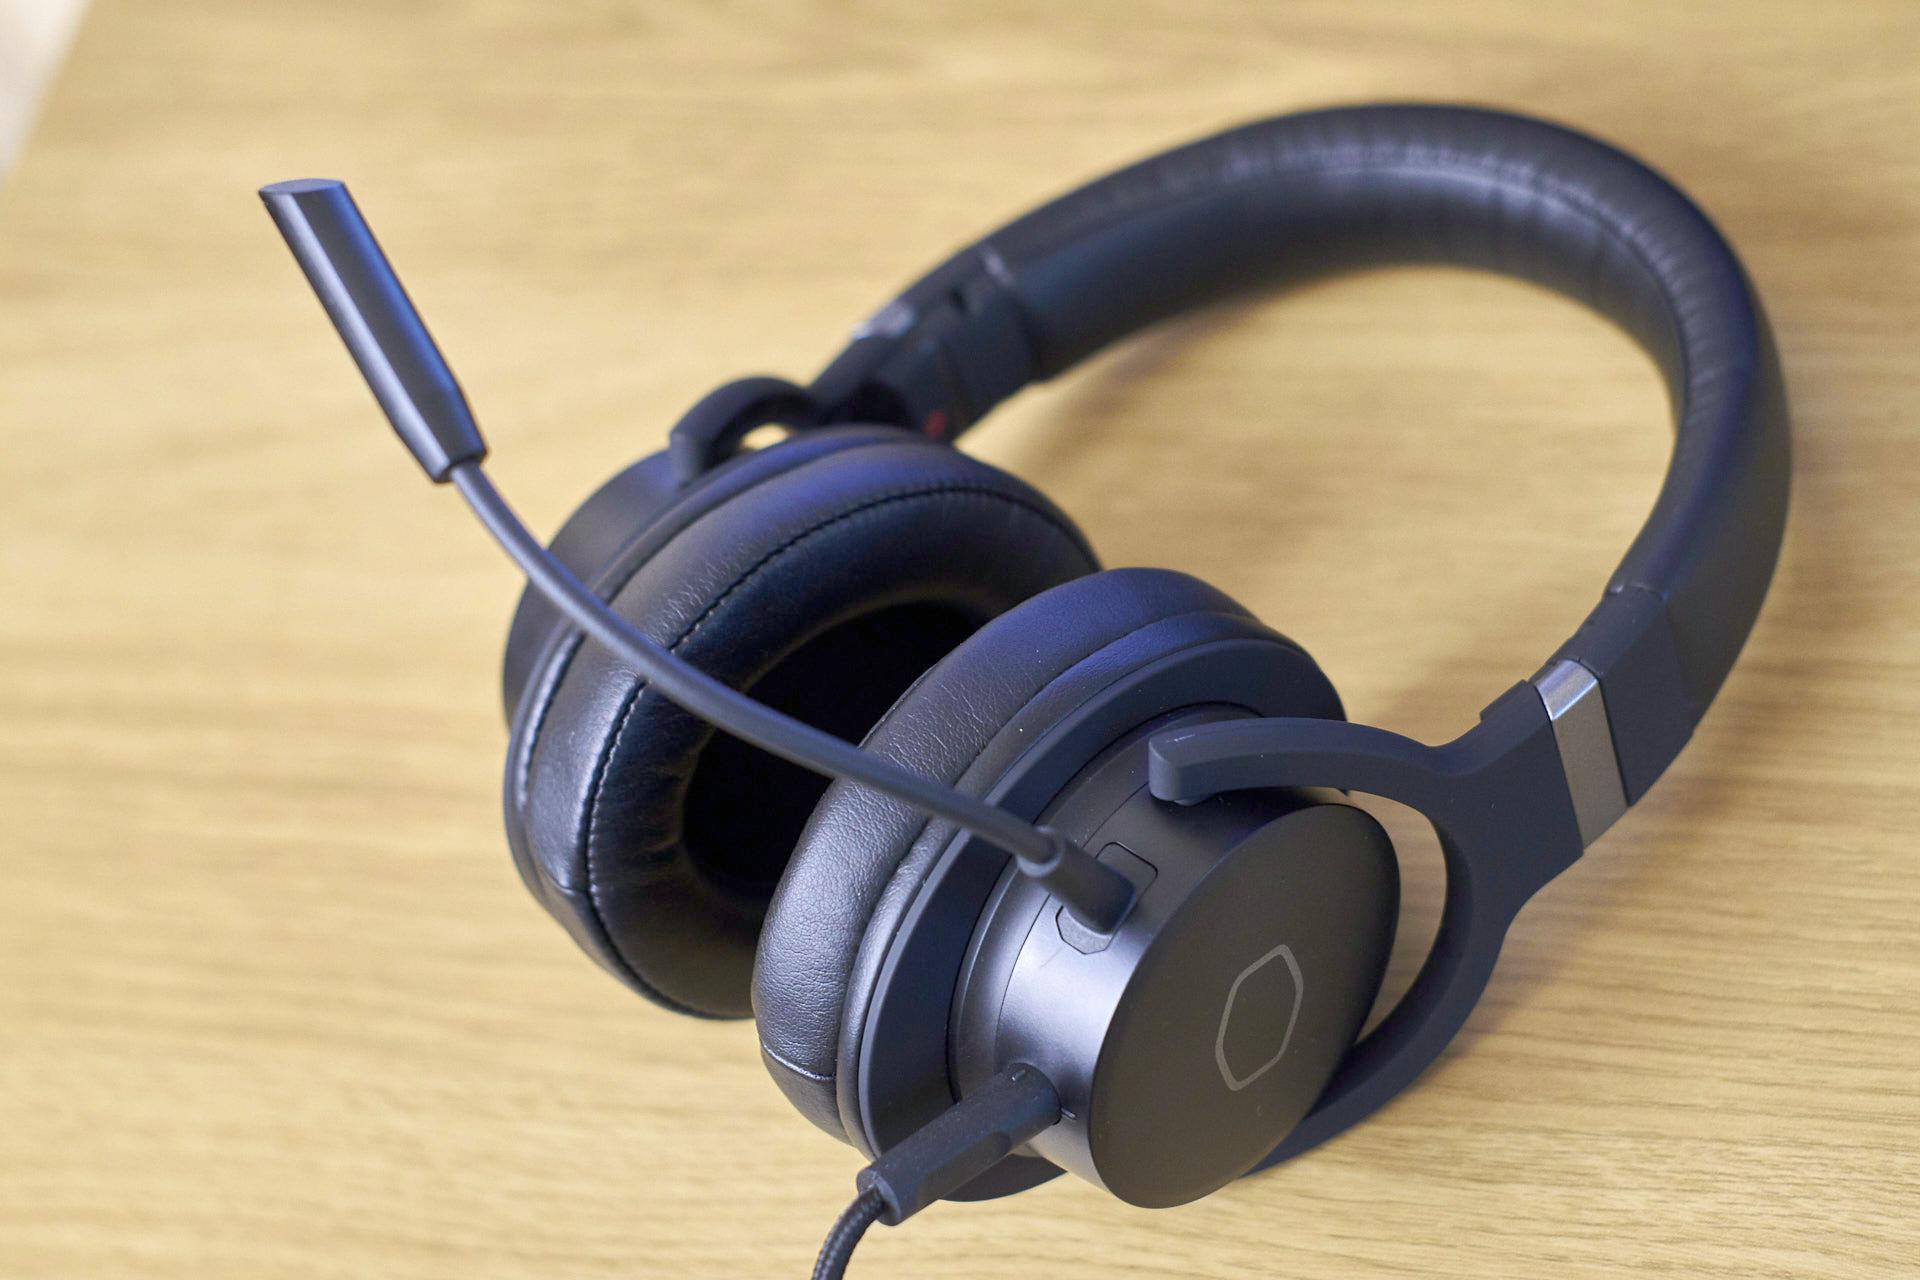 Cooler Master MH751 – are they good for music too?